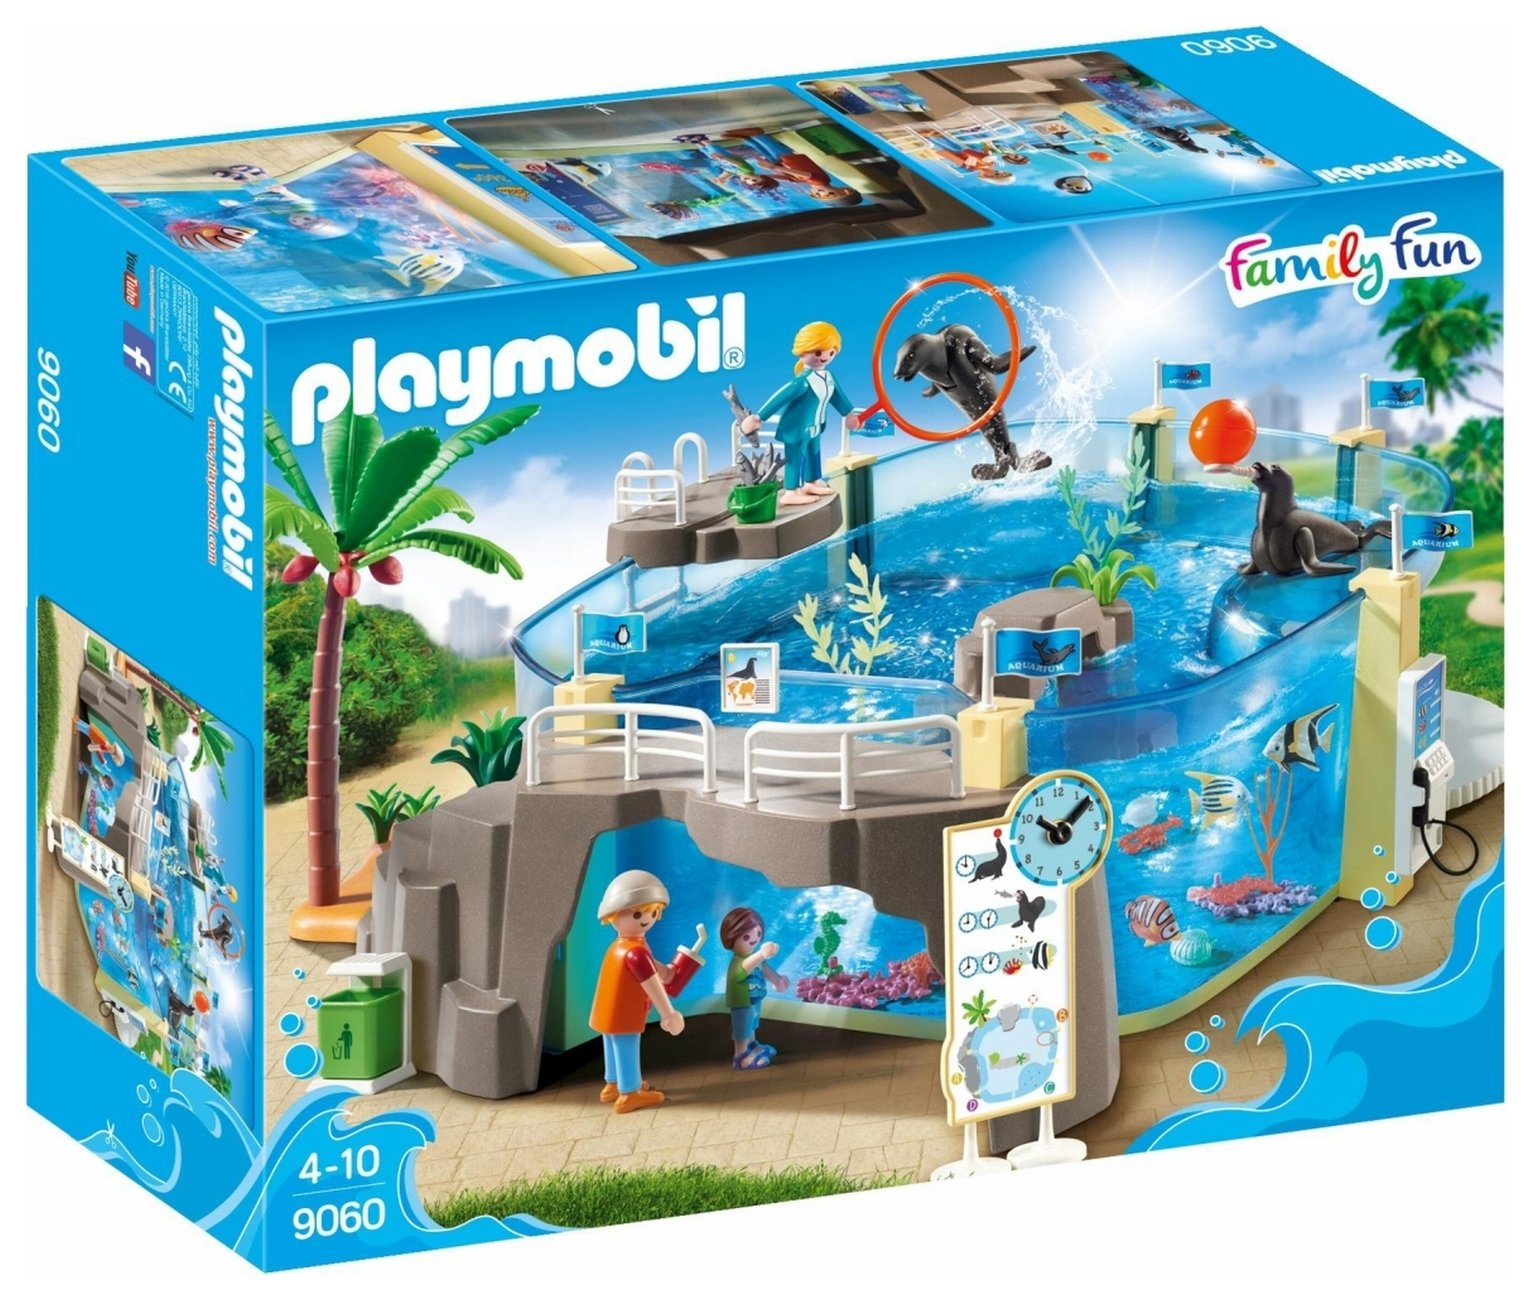 Playmobil 9060 Family Fun Aquarium